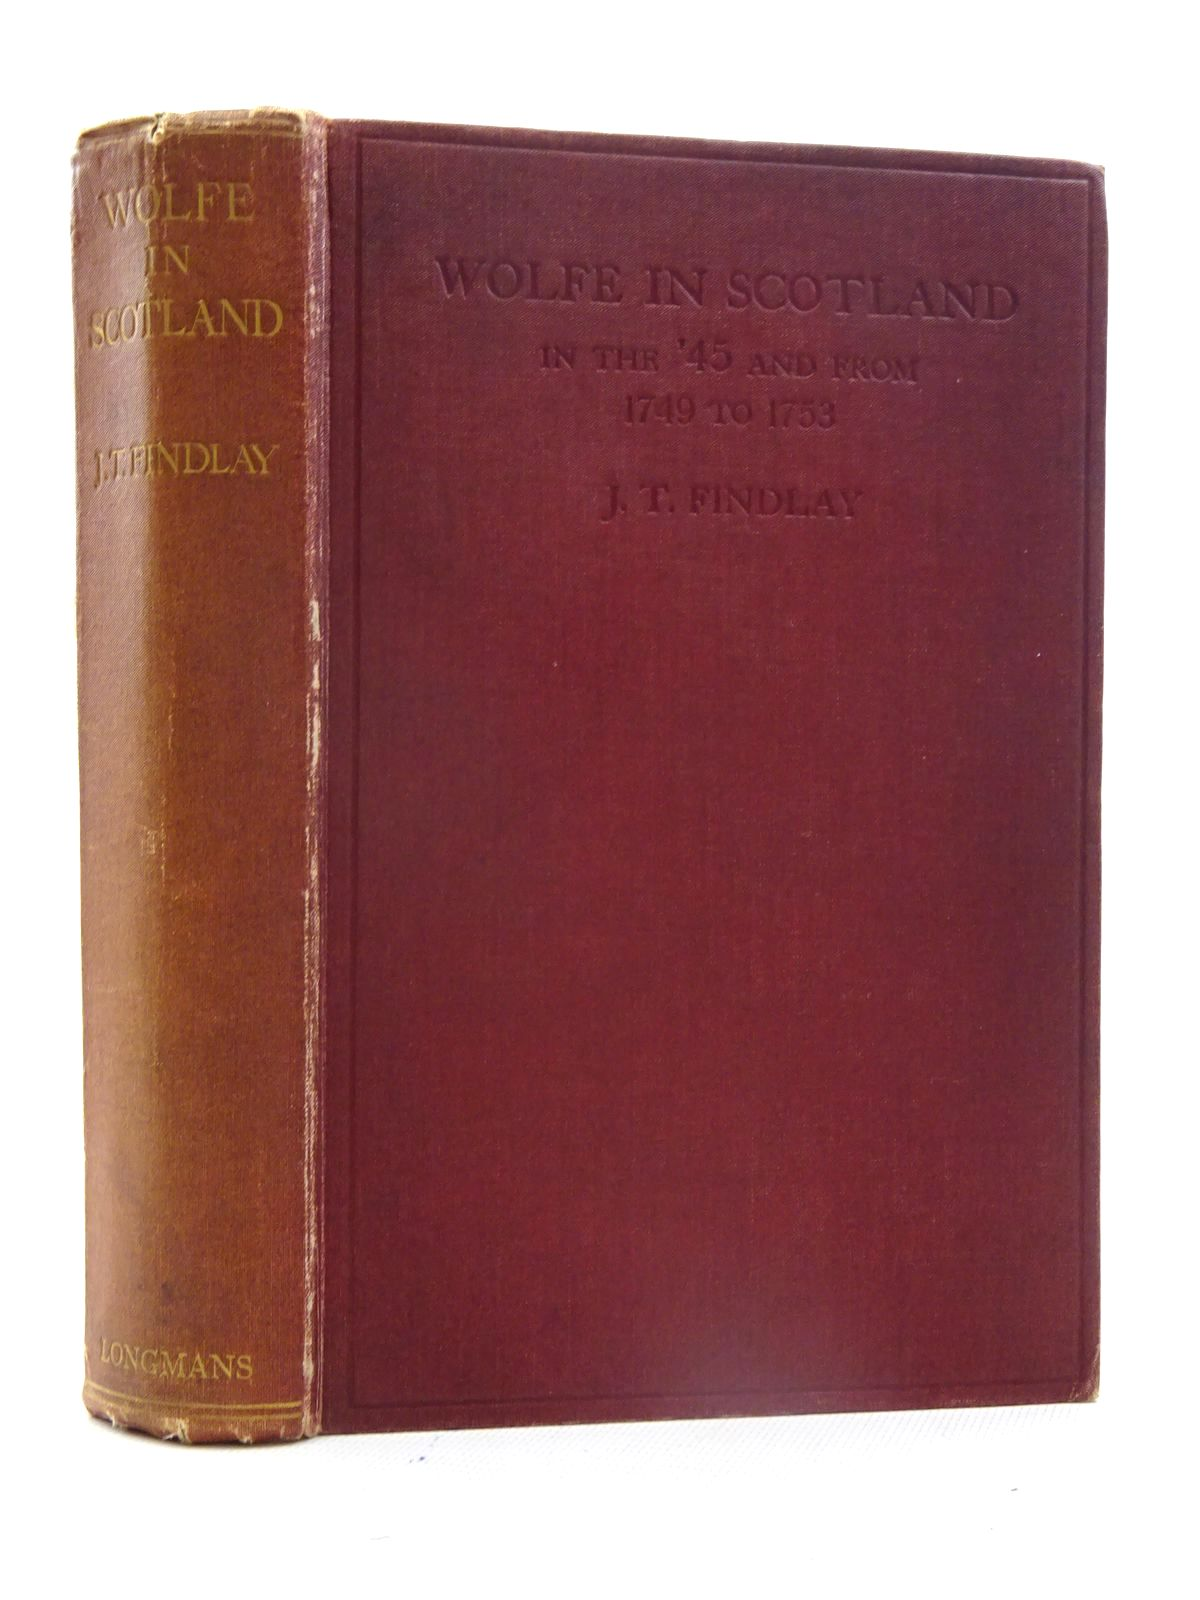 Photo of WOLFE IN SCOTLAND IN THE '45 AND FROM 1749 TO 1753 written by Findlay, J.T. published by Longmans, Green & Co. (STOCK CODE: 2125577)  for sale by Stella & Rose's Books